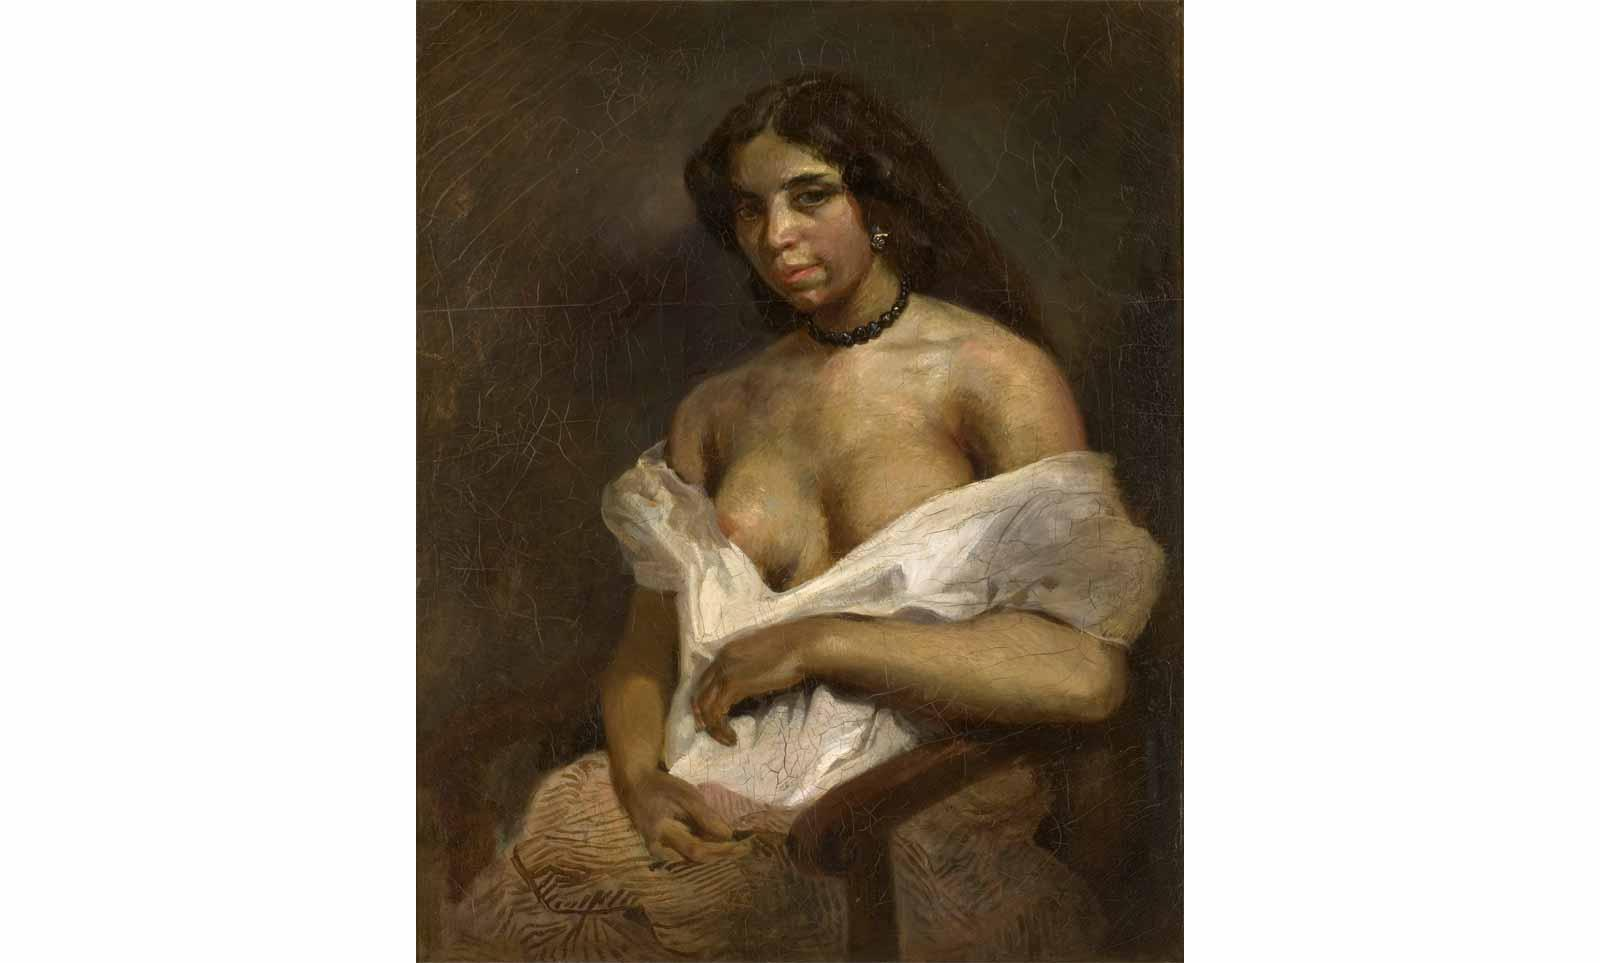 Eugene Delacroix (1798-1863), Study after the model Aspasie, circa 1824-1826